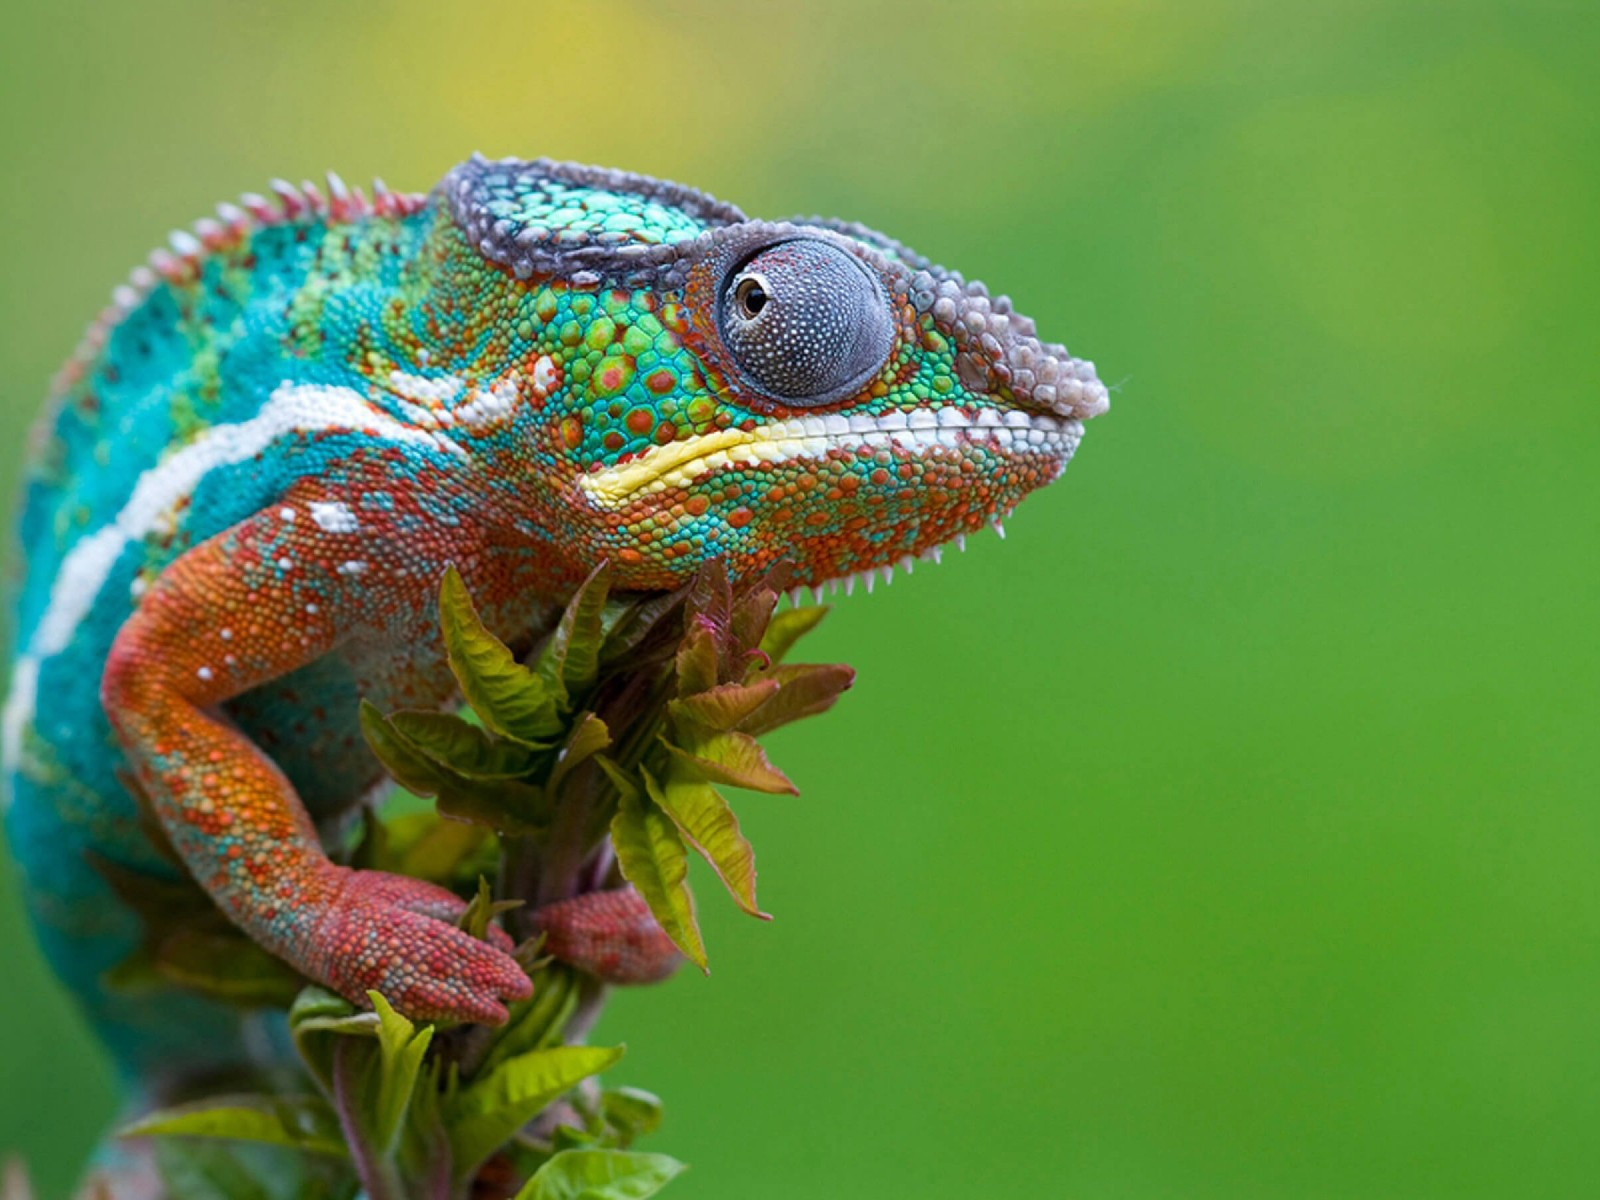 Colorful Panther Chameleon Wallpaper for Desktop 1600x1200